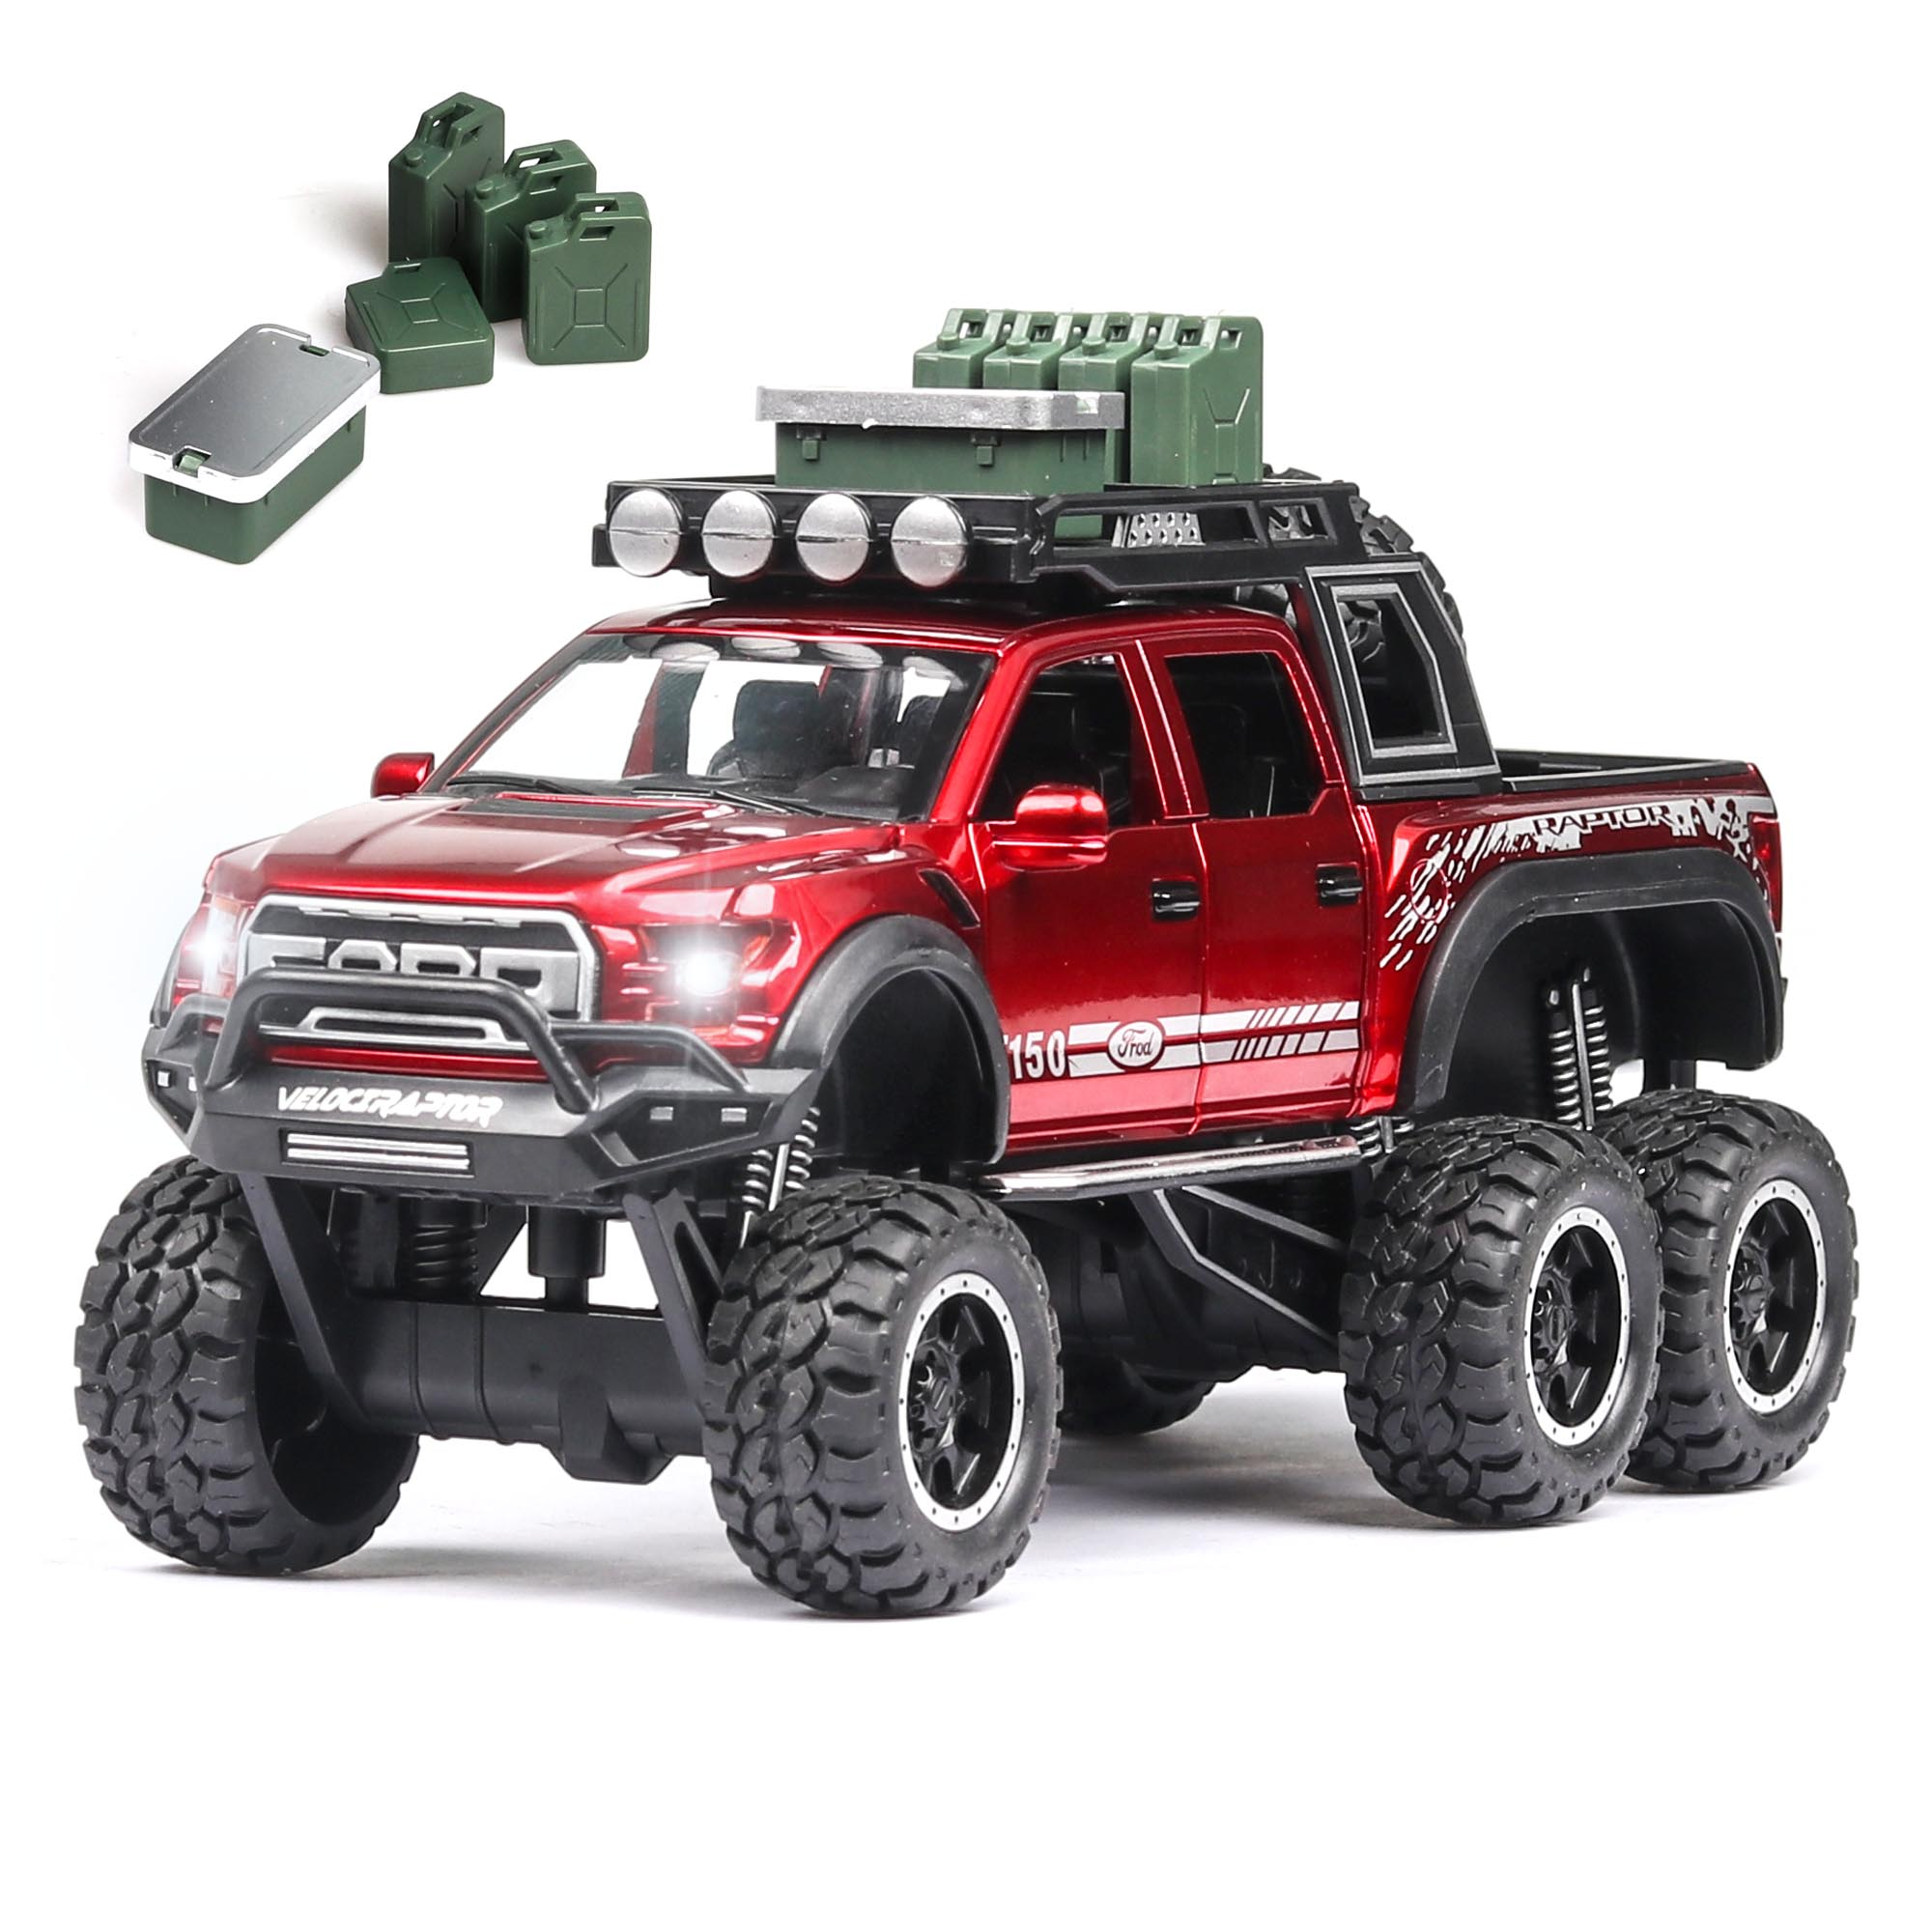 1:28 Diecast FORD RAPTOR F150 SUV Metal Model Car Toy Wheels Alloy Vehicle Sound And Light Pull Back Kid Car Toys For Children